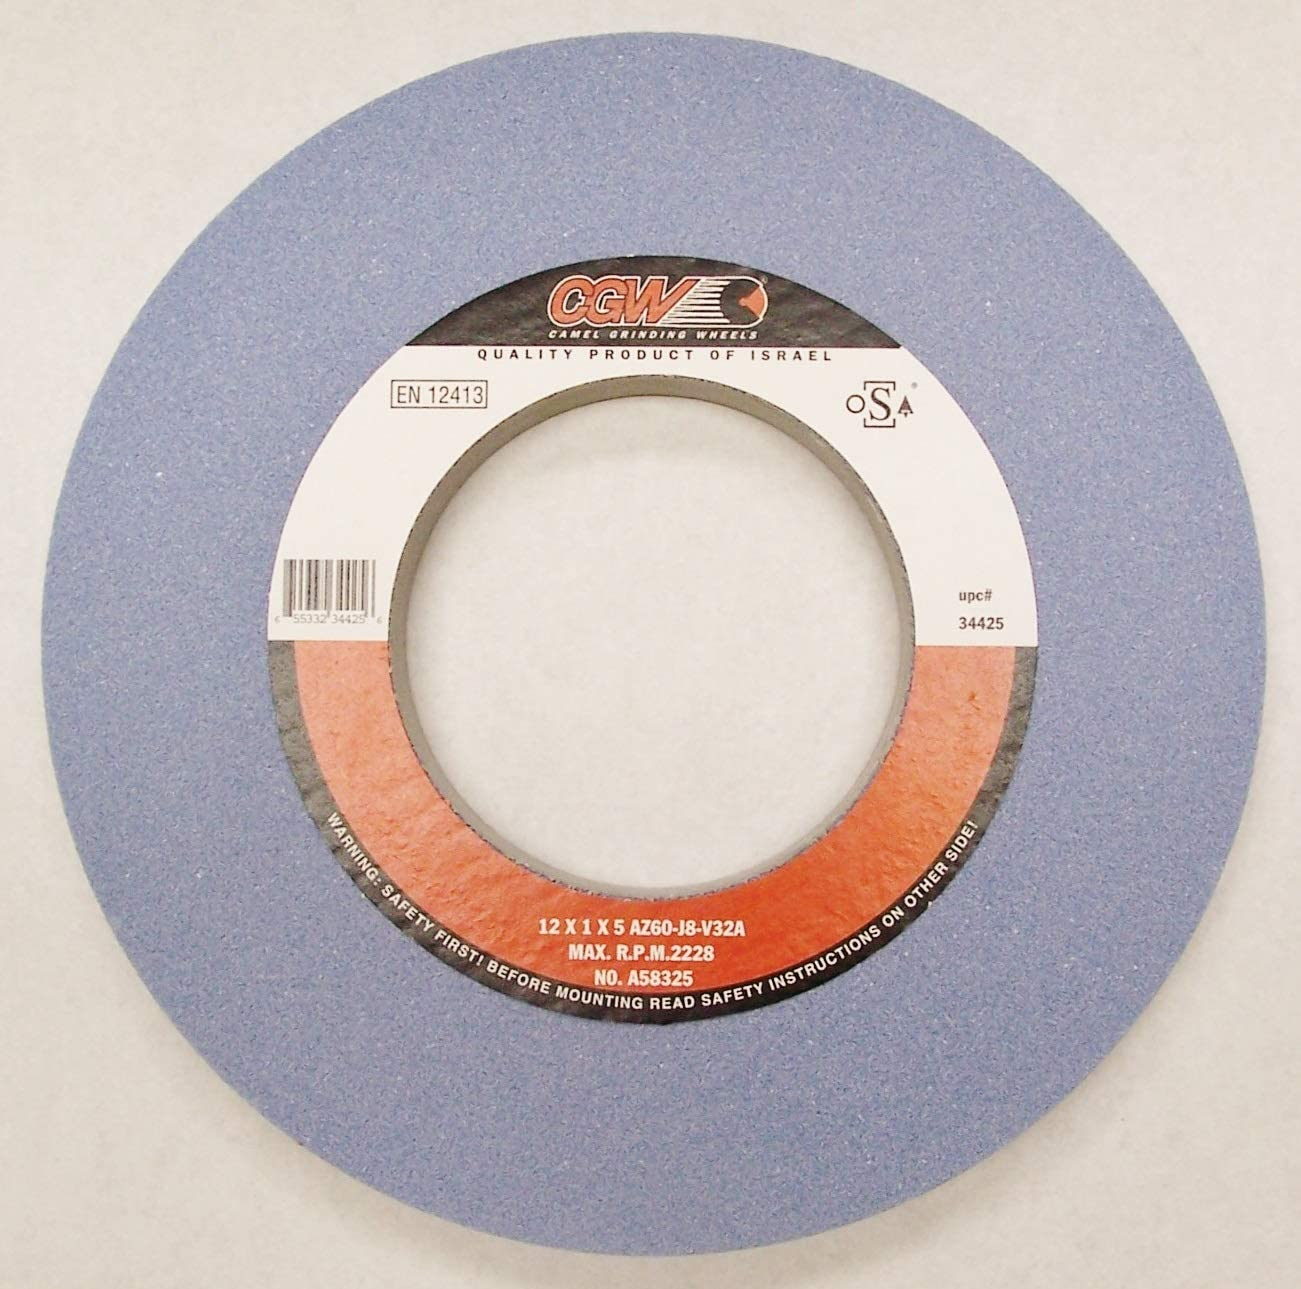 CAMEL AZ Surface Grinding Wheel - Size: 12